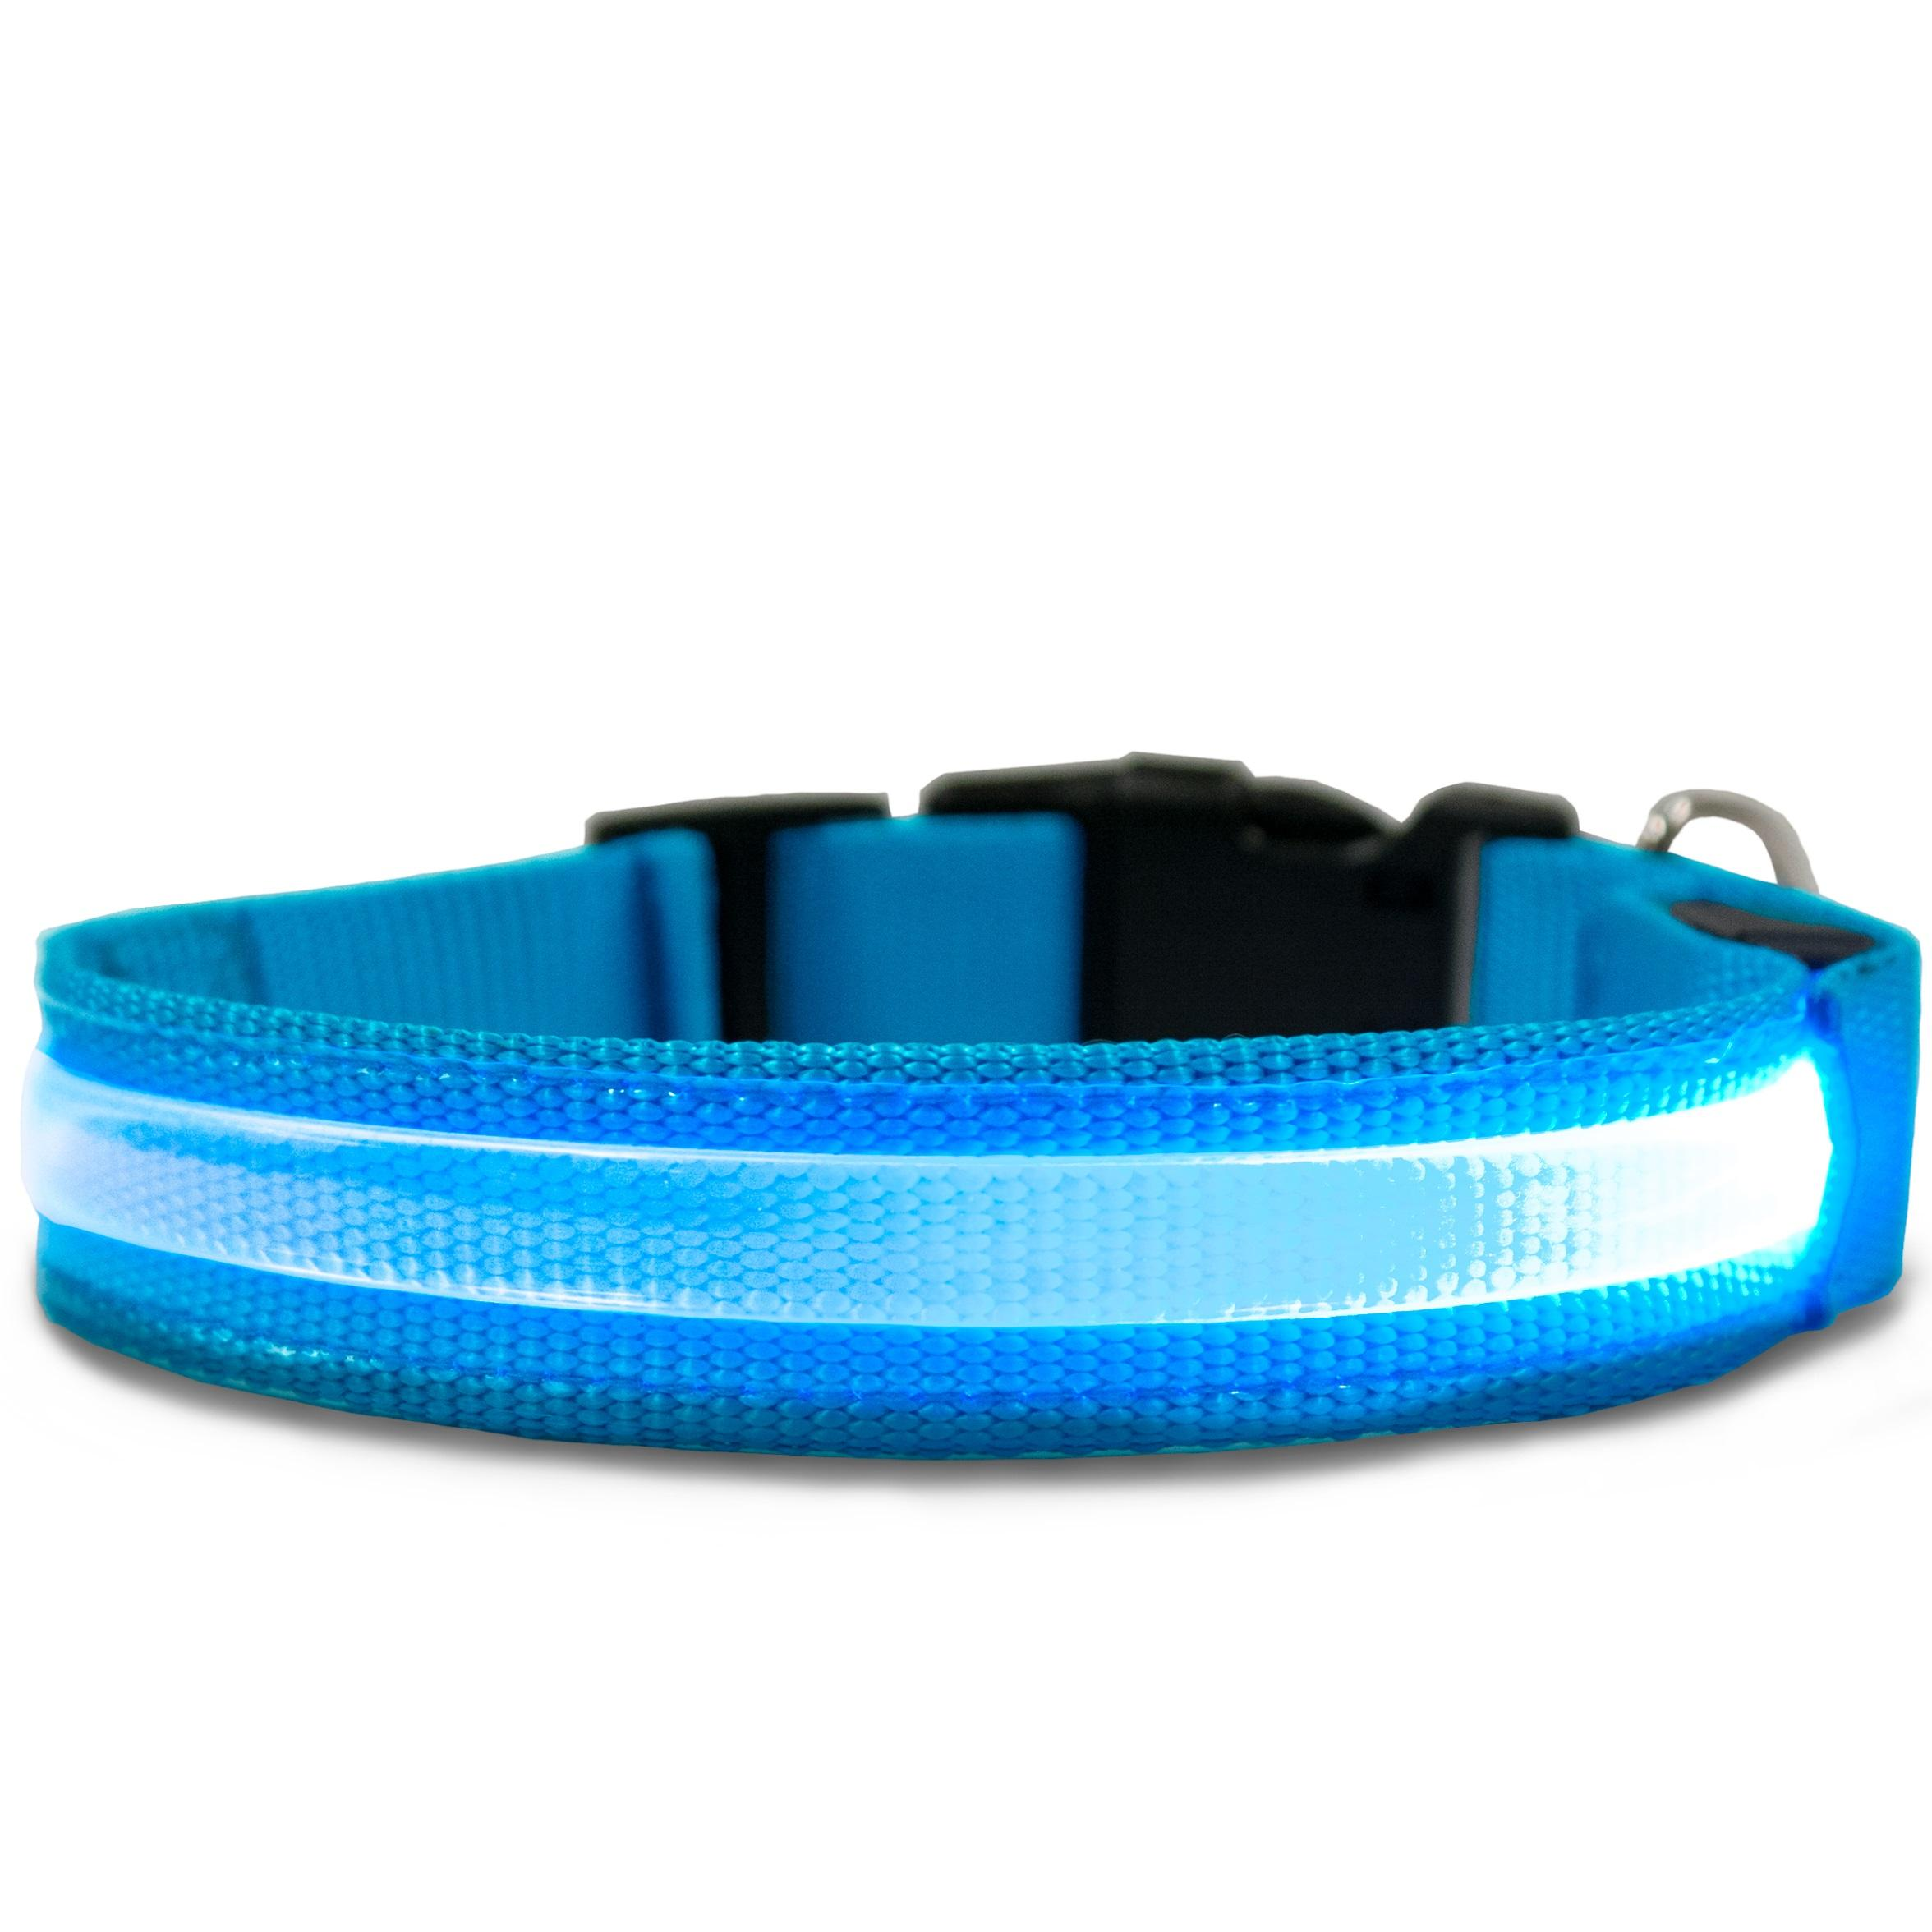 light up rechargeable personalized amazon led dog reg collar